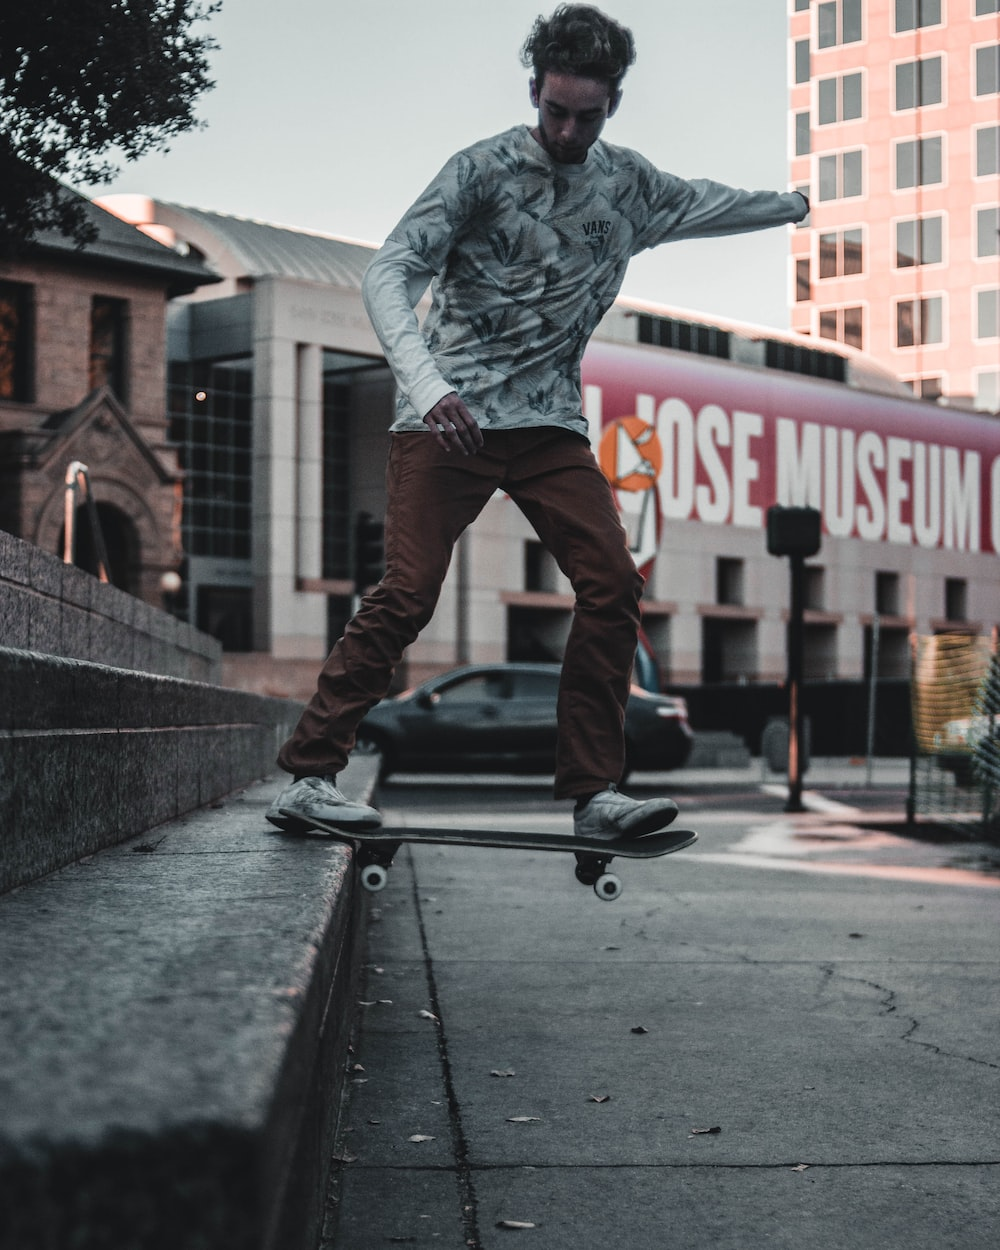 man playing skateboard on staircase